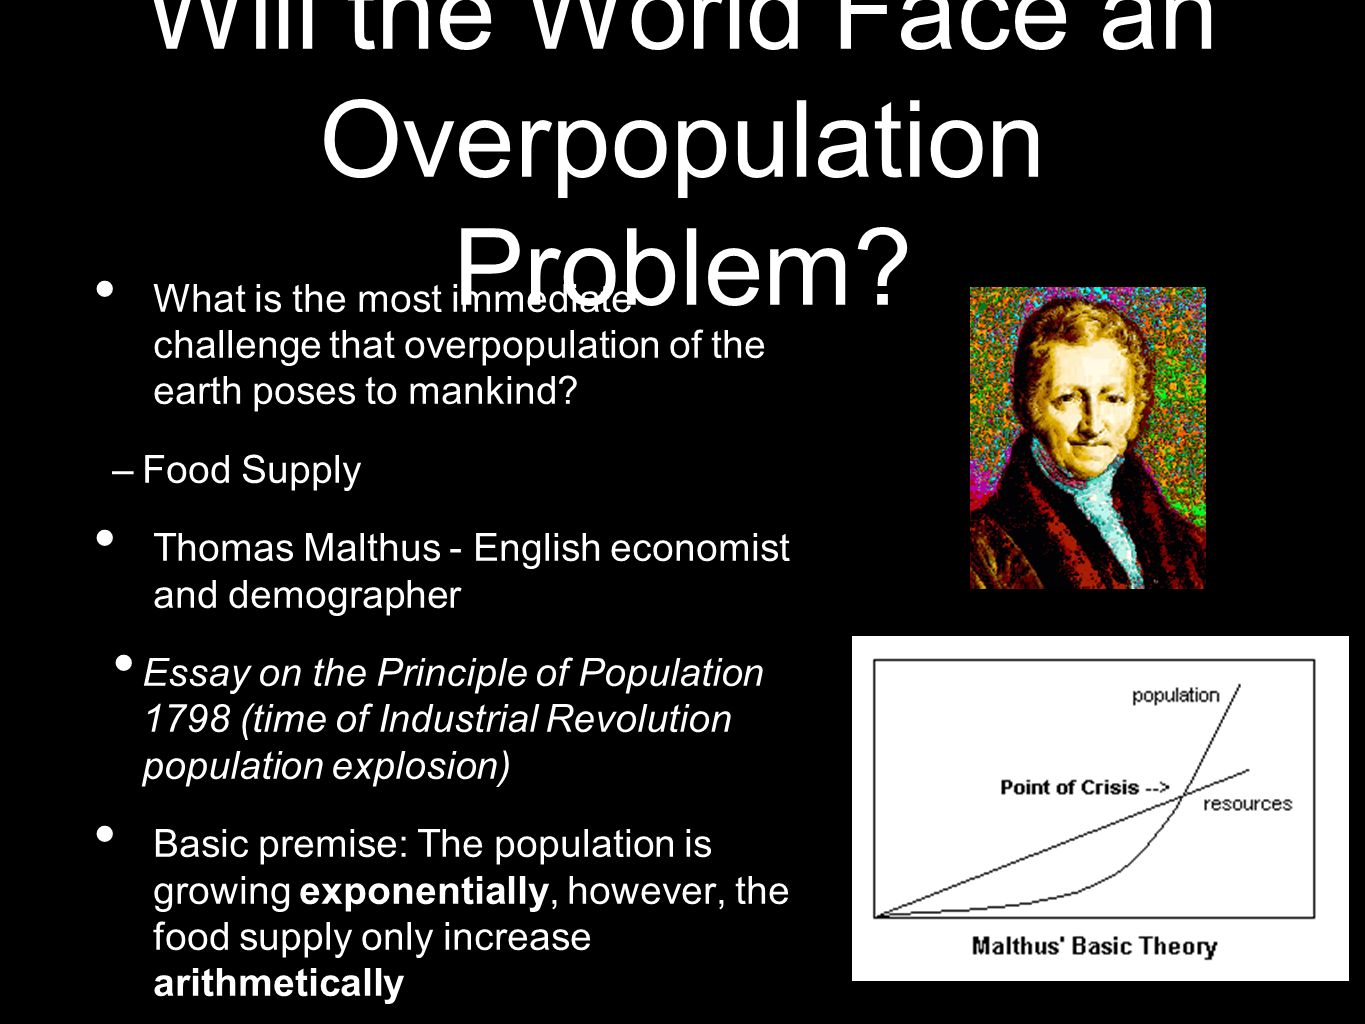 overpopulation of the world essay Overpopulation: causes, effects and solutions: overpopulation is an undesirable condition where the number of existing human population exceeds the carrying as population of this world.